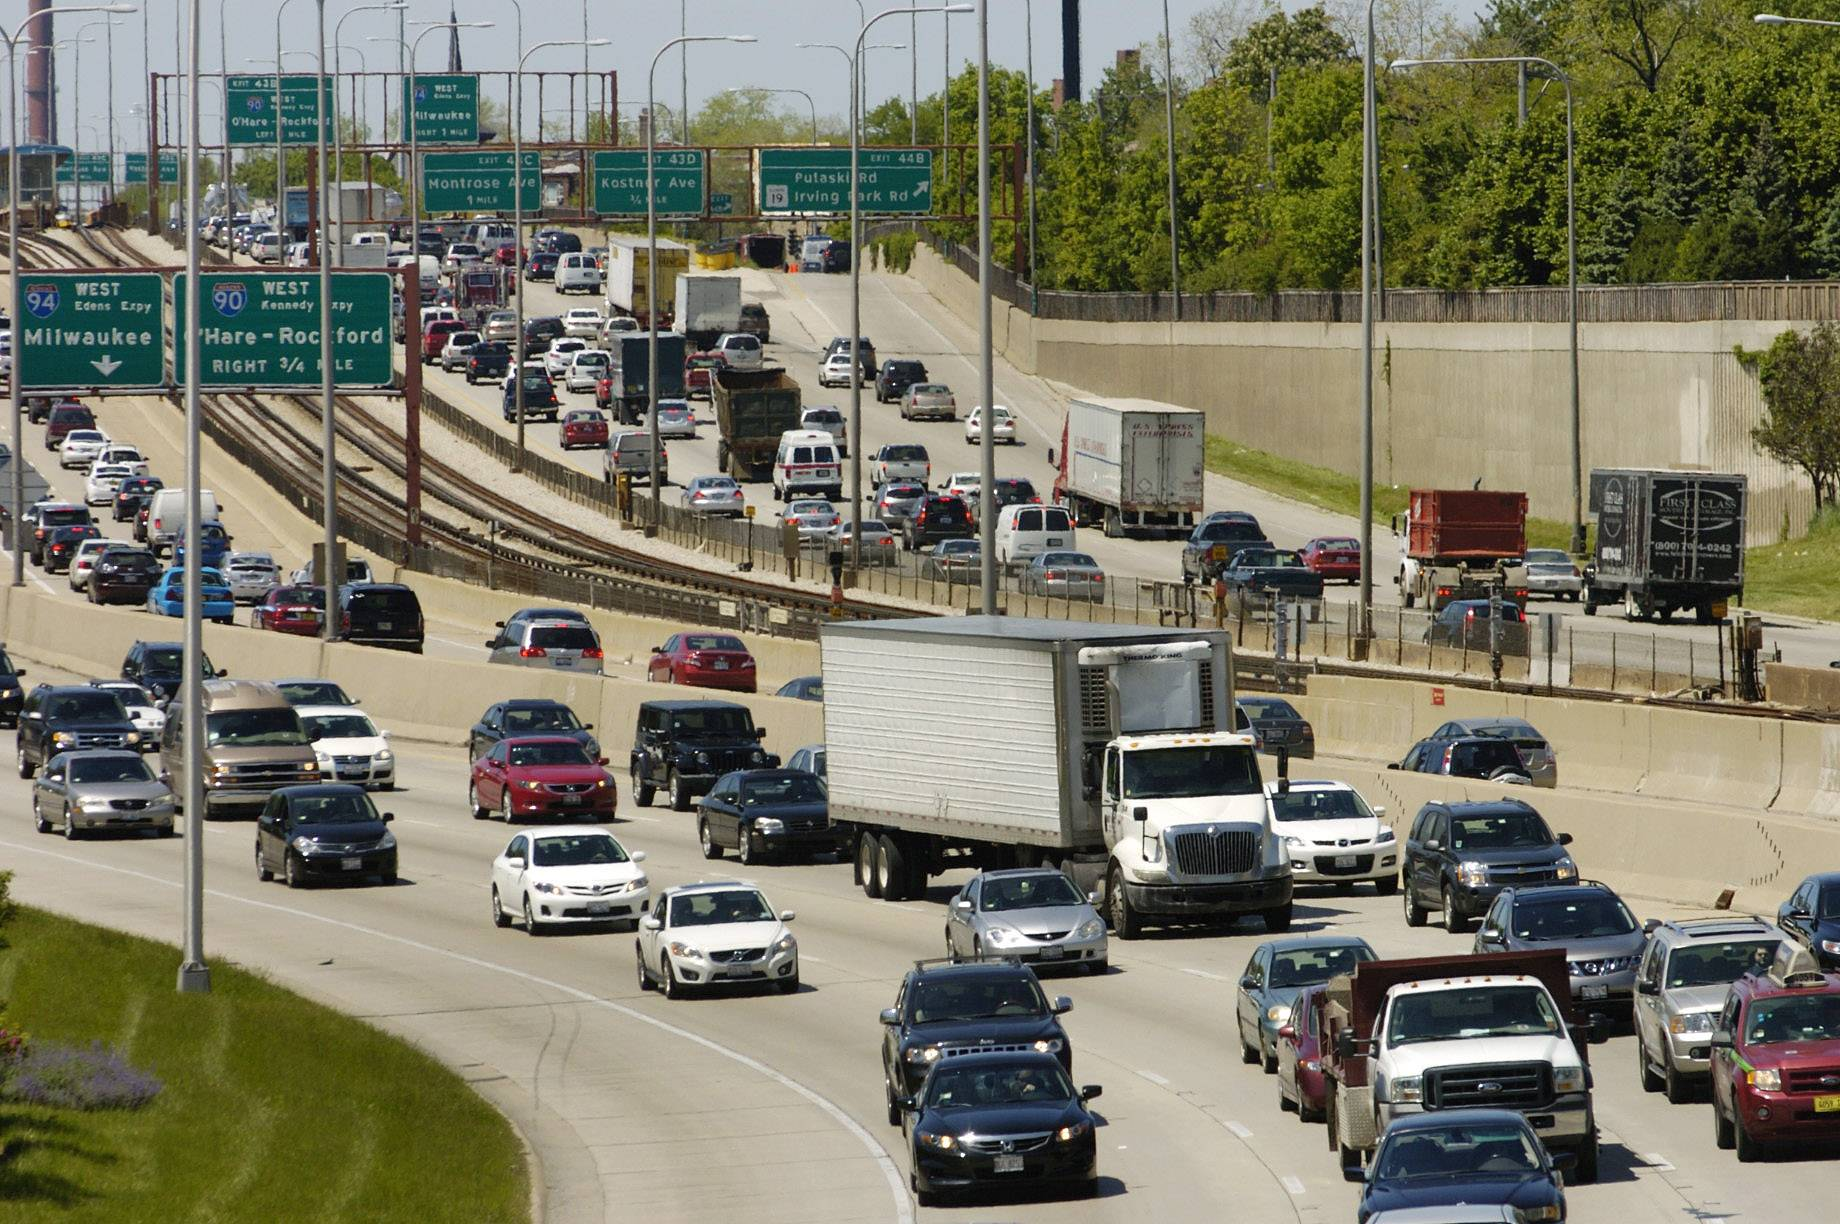 Avoid the Kennedy this weekend, IDOT warns